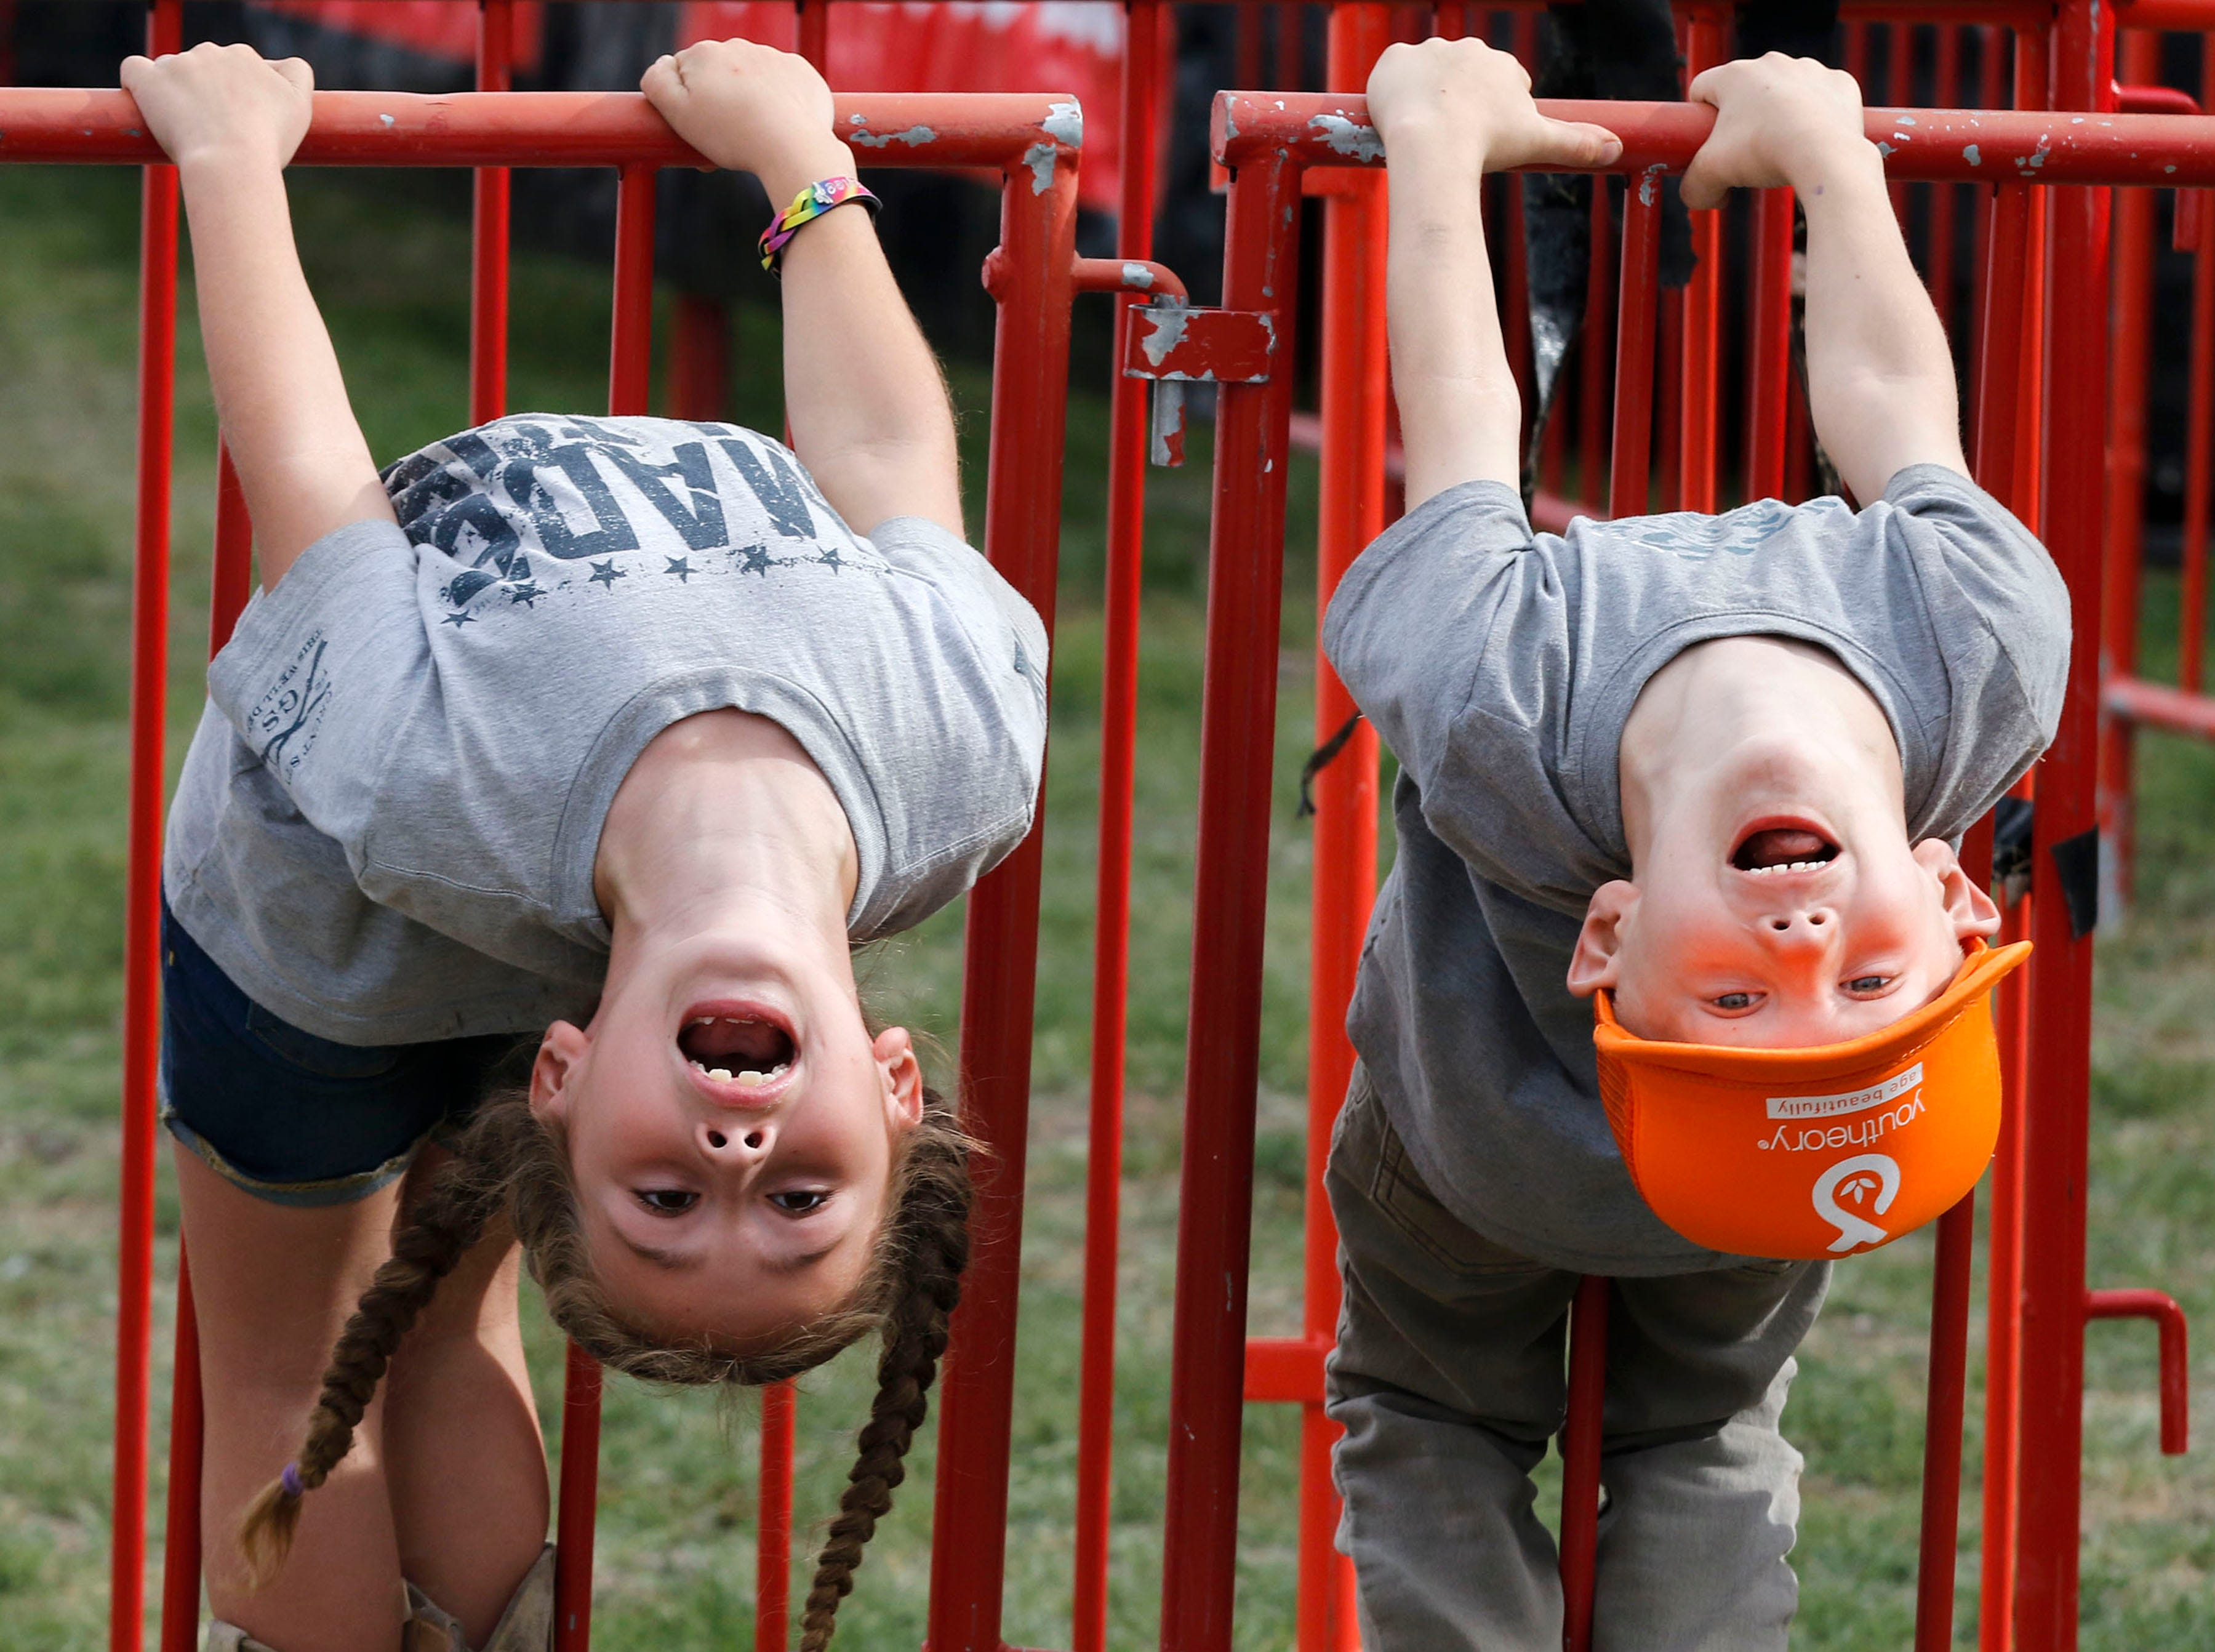 Haylee Fron 6, and her buddy Ethan Lee 6, both from Mesa hang from a barricade as The Cole Trains play during Country Thunder Arizona on April 11, 2019, in Florence, Arizona.